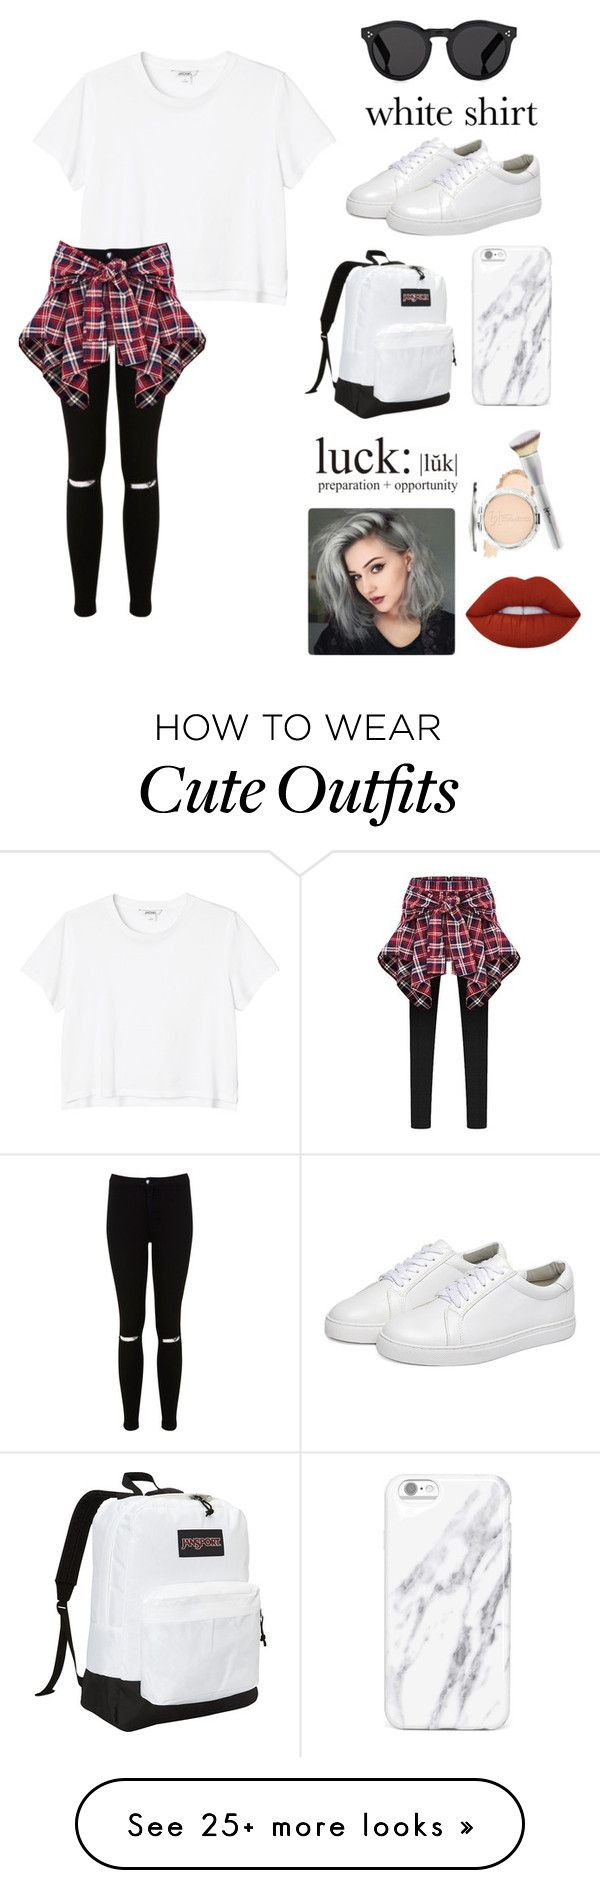 """Cute Outfit"" by ellenmadeintheam on Polyvore featuring Monki, Miss Selfridge, It Cosmetics, JanSport, Illesteva, Lime Crime and WardrobeStaples"